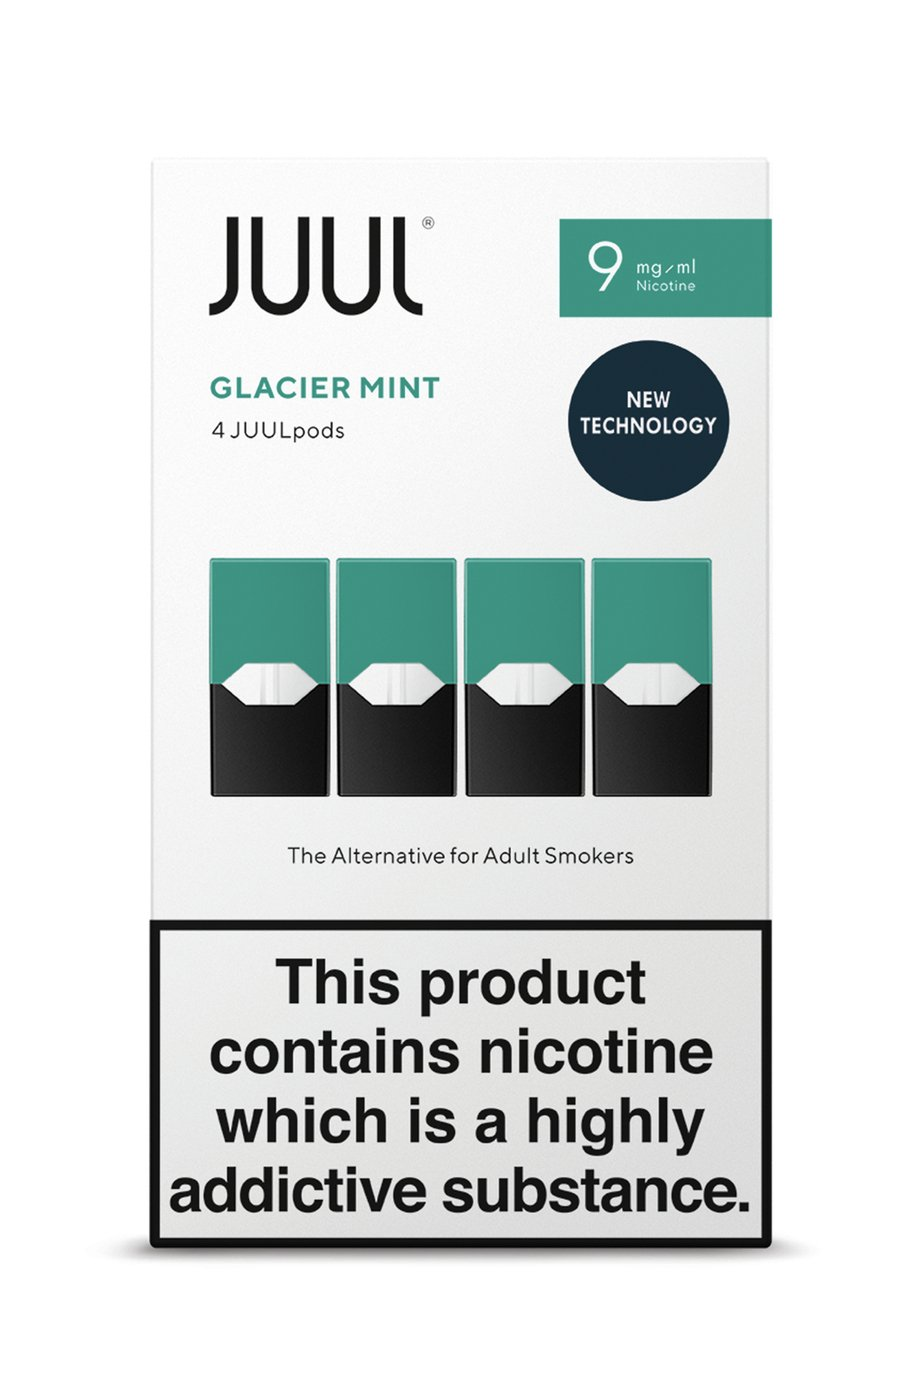 JUUL Glacier Mint PODS 9mg